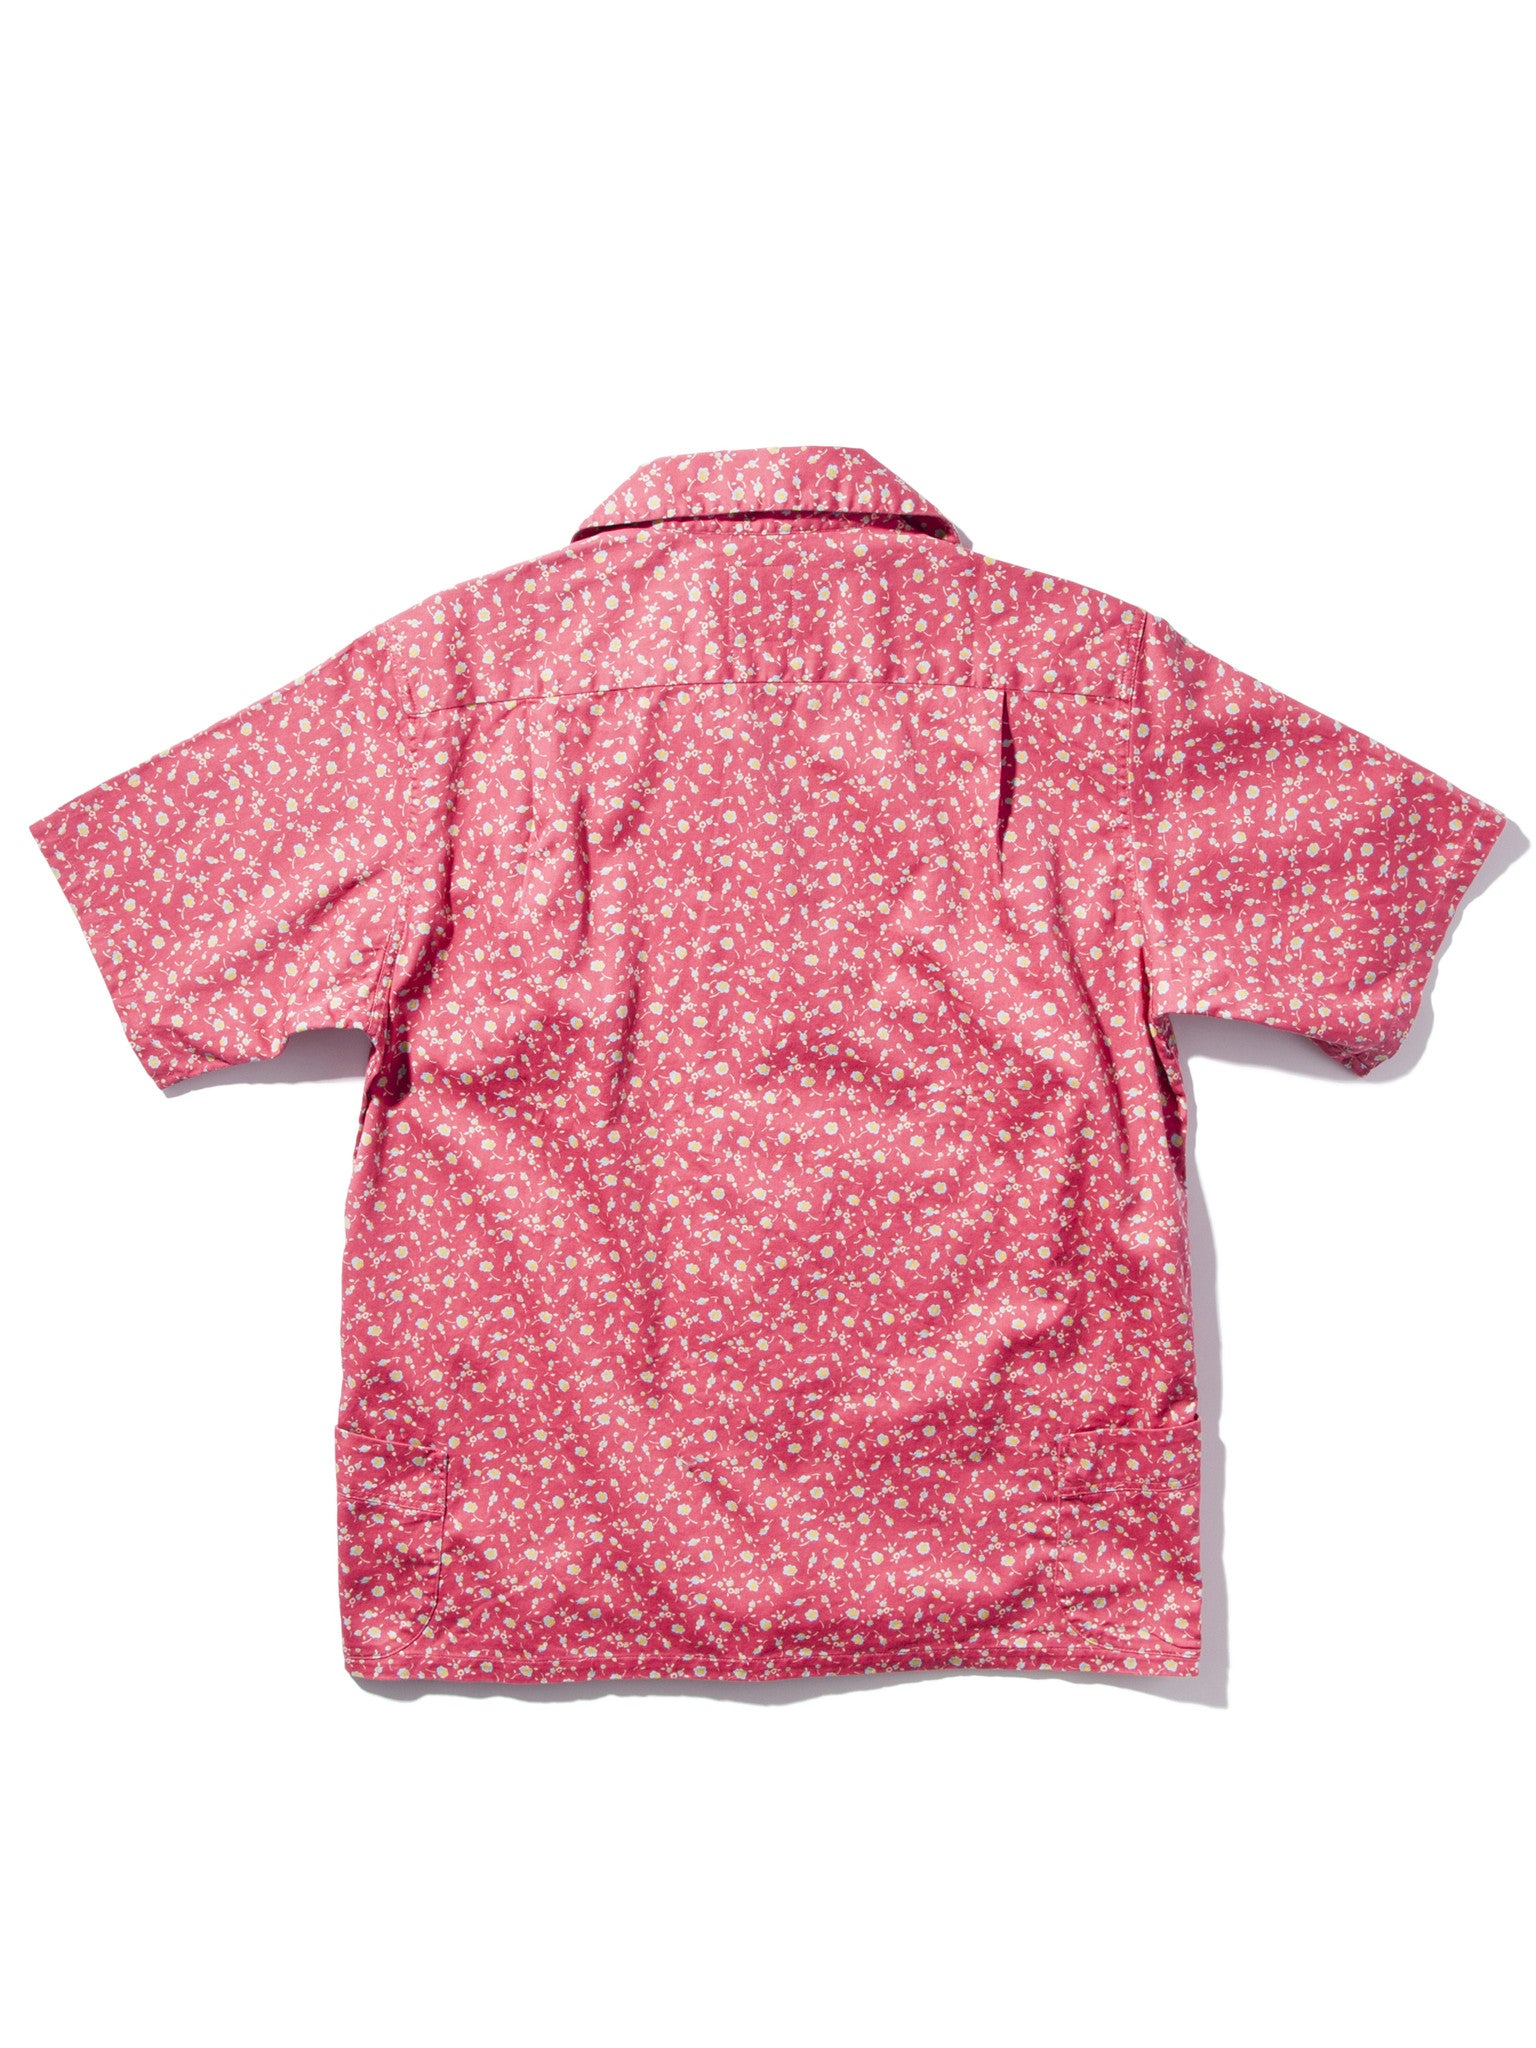 Red Kahuna Shirt S/S Petals 5